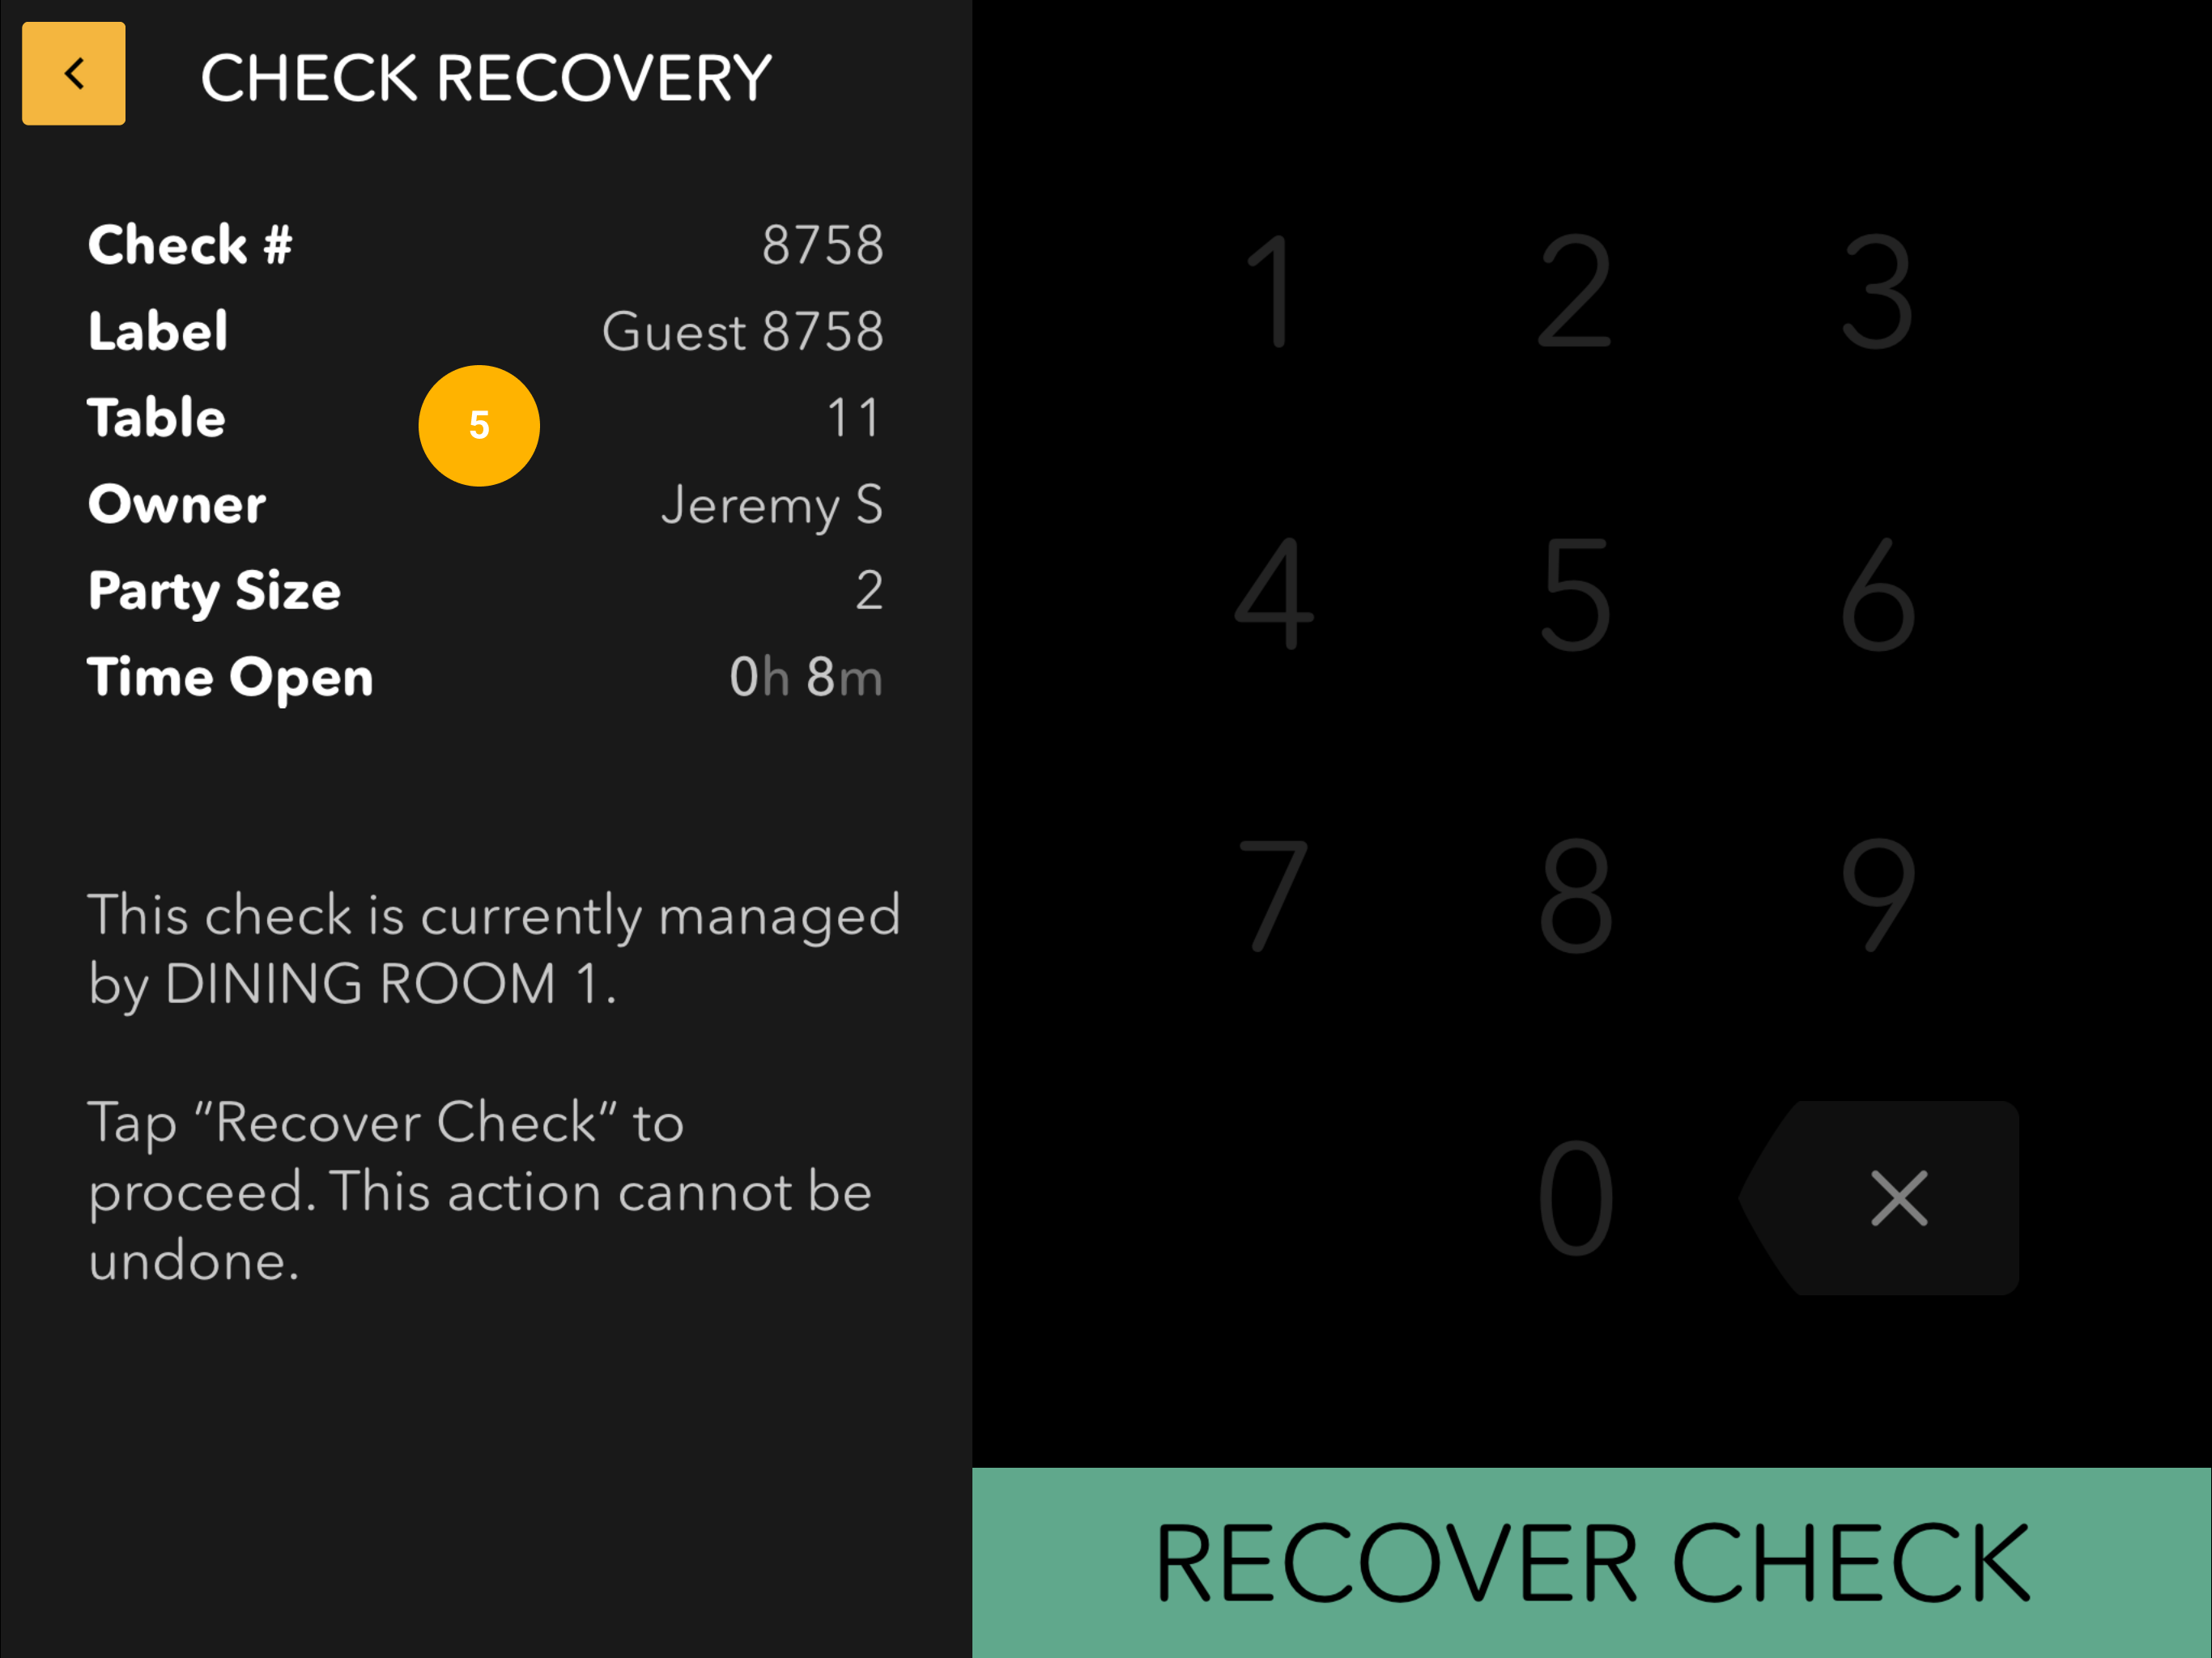 005_Check_Recovery.png